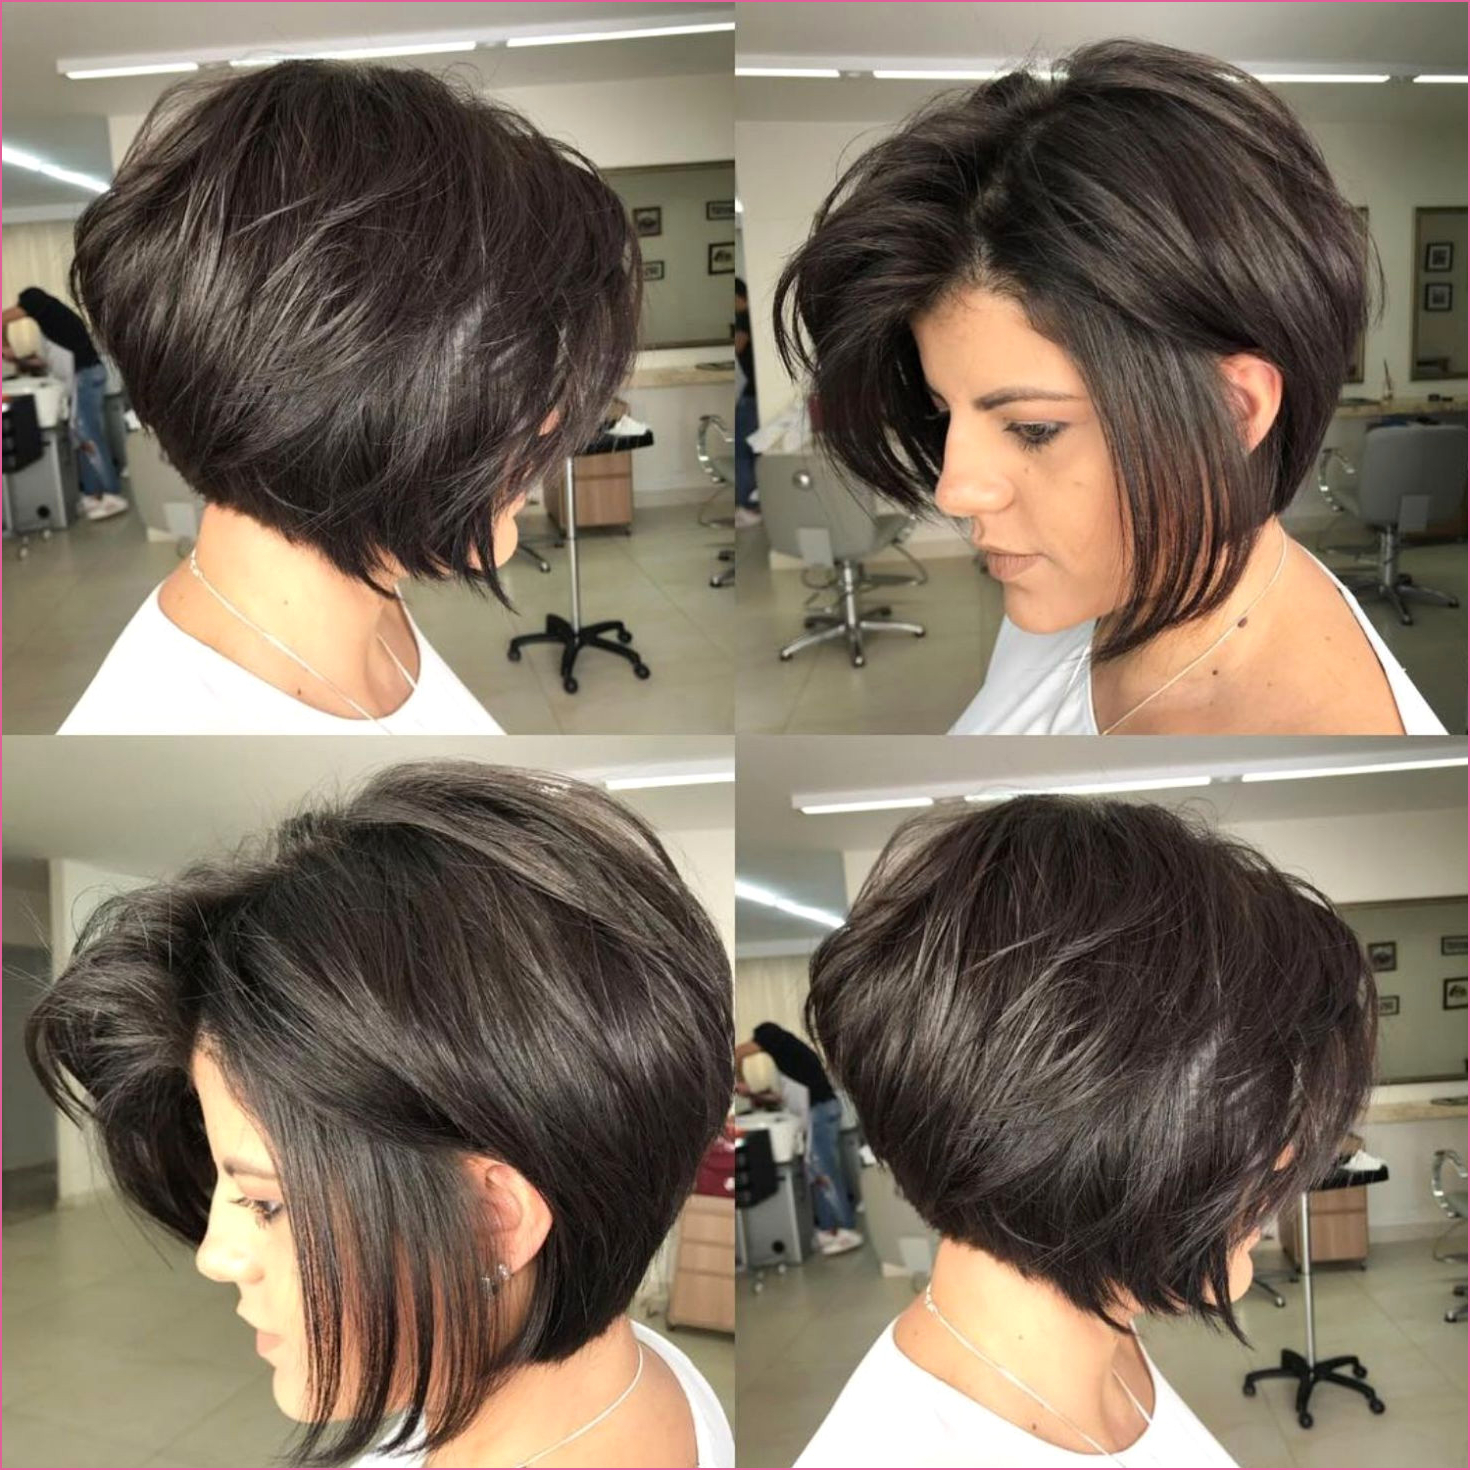 Layered Bob Haircuts For Thick Hair Fashion Layered Bob For Long Bob Hairstyles For Round Face Types (View 15 of 20)